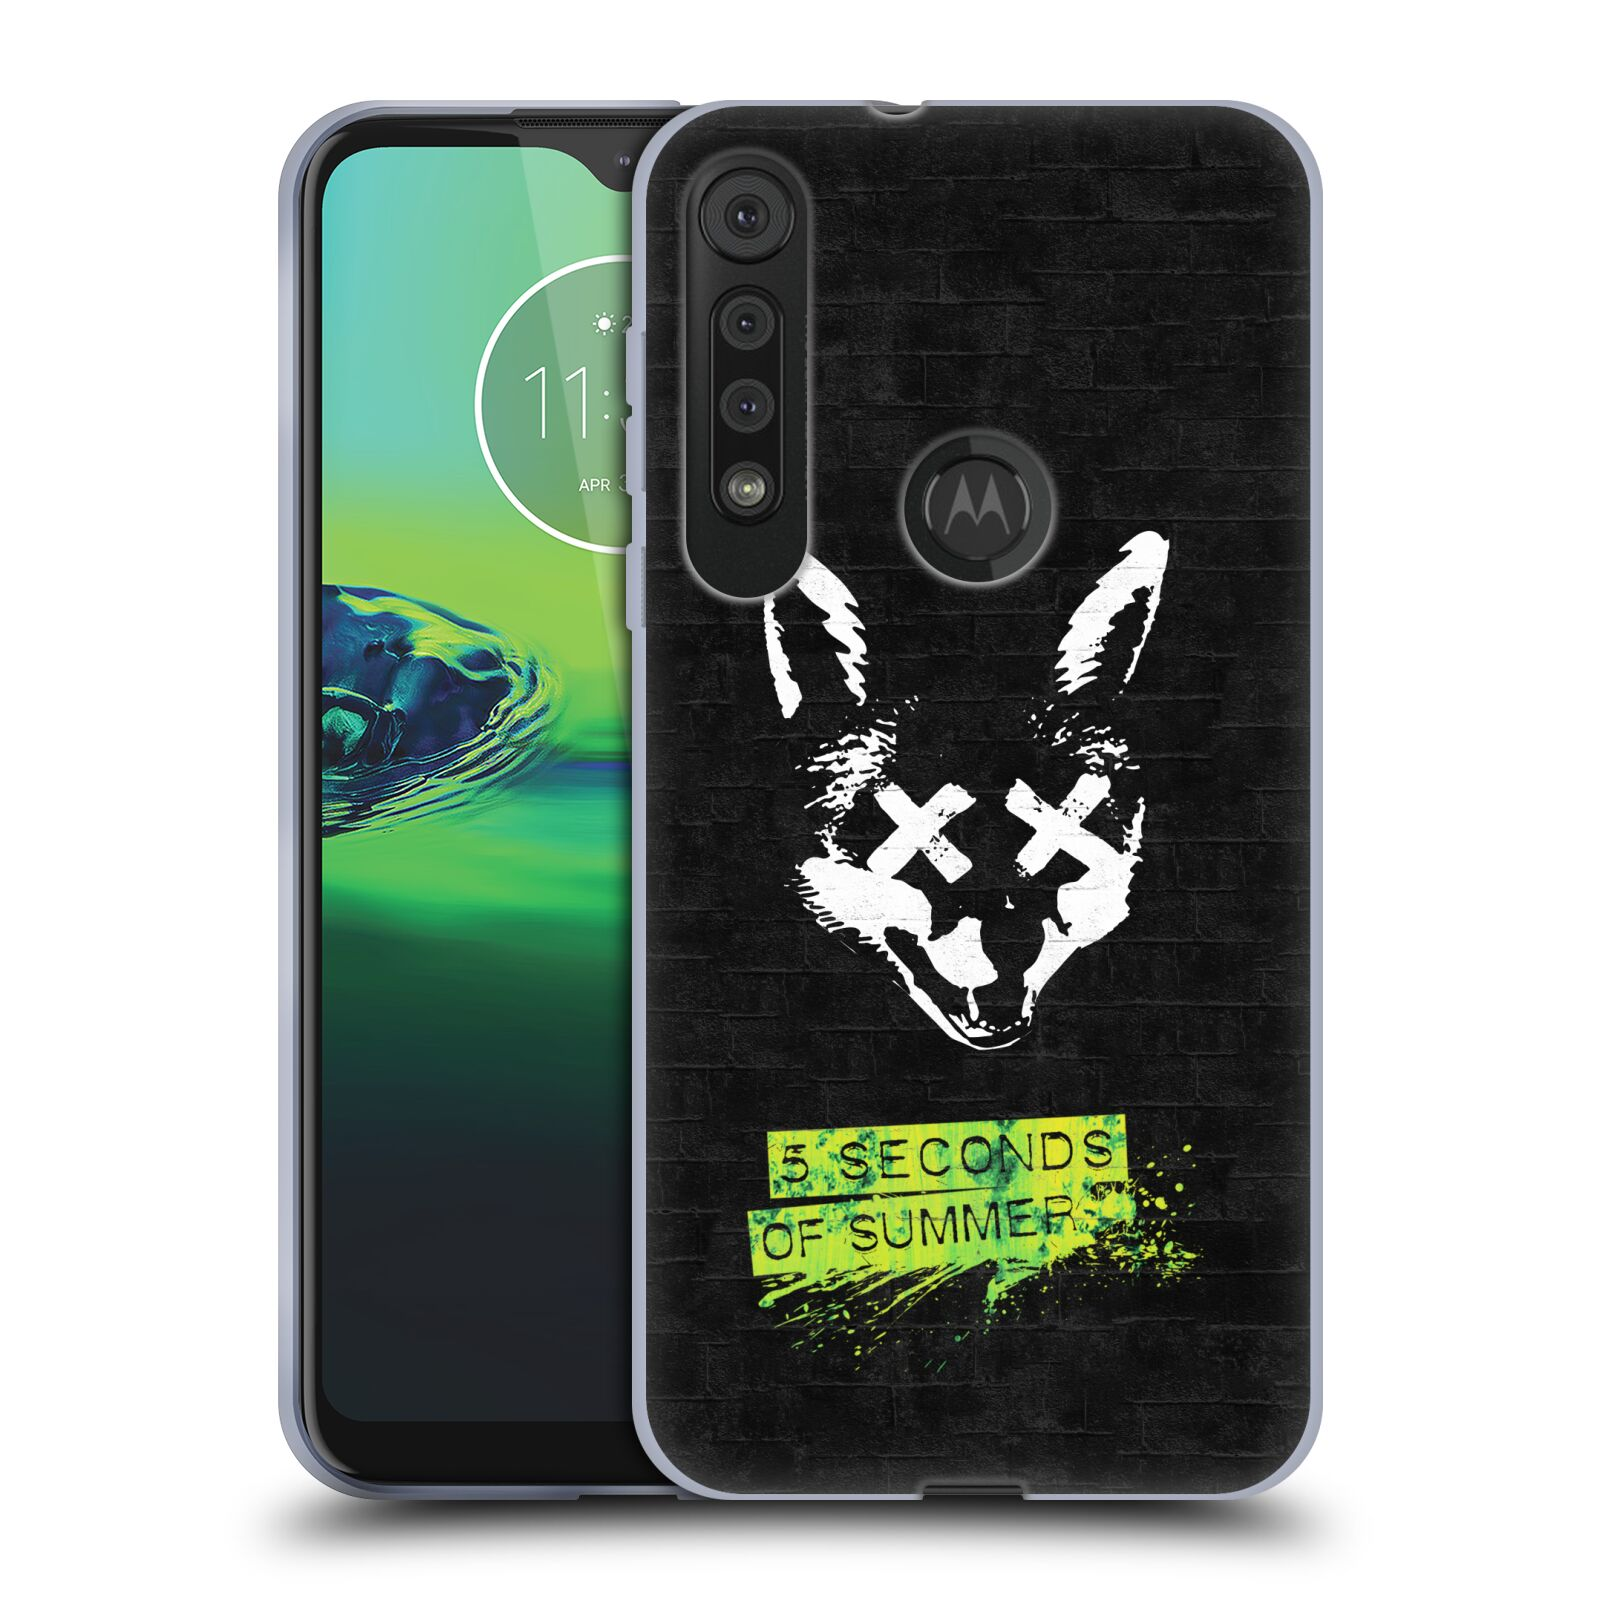 Silikonové pouzdro na mobil Motorola One Macro - Head Case - 5 Seconds of Summer - Fox